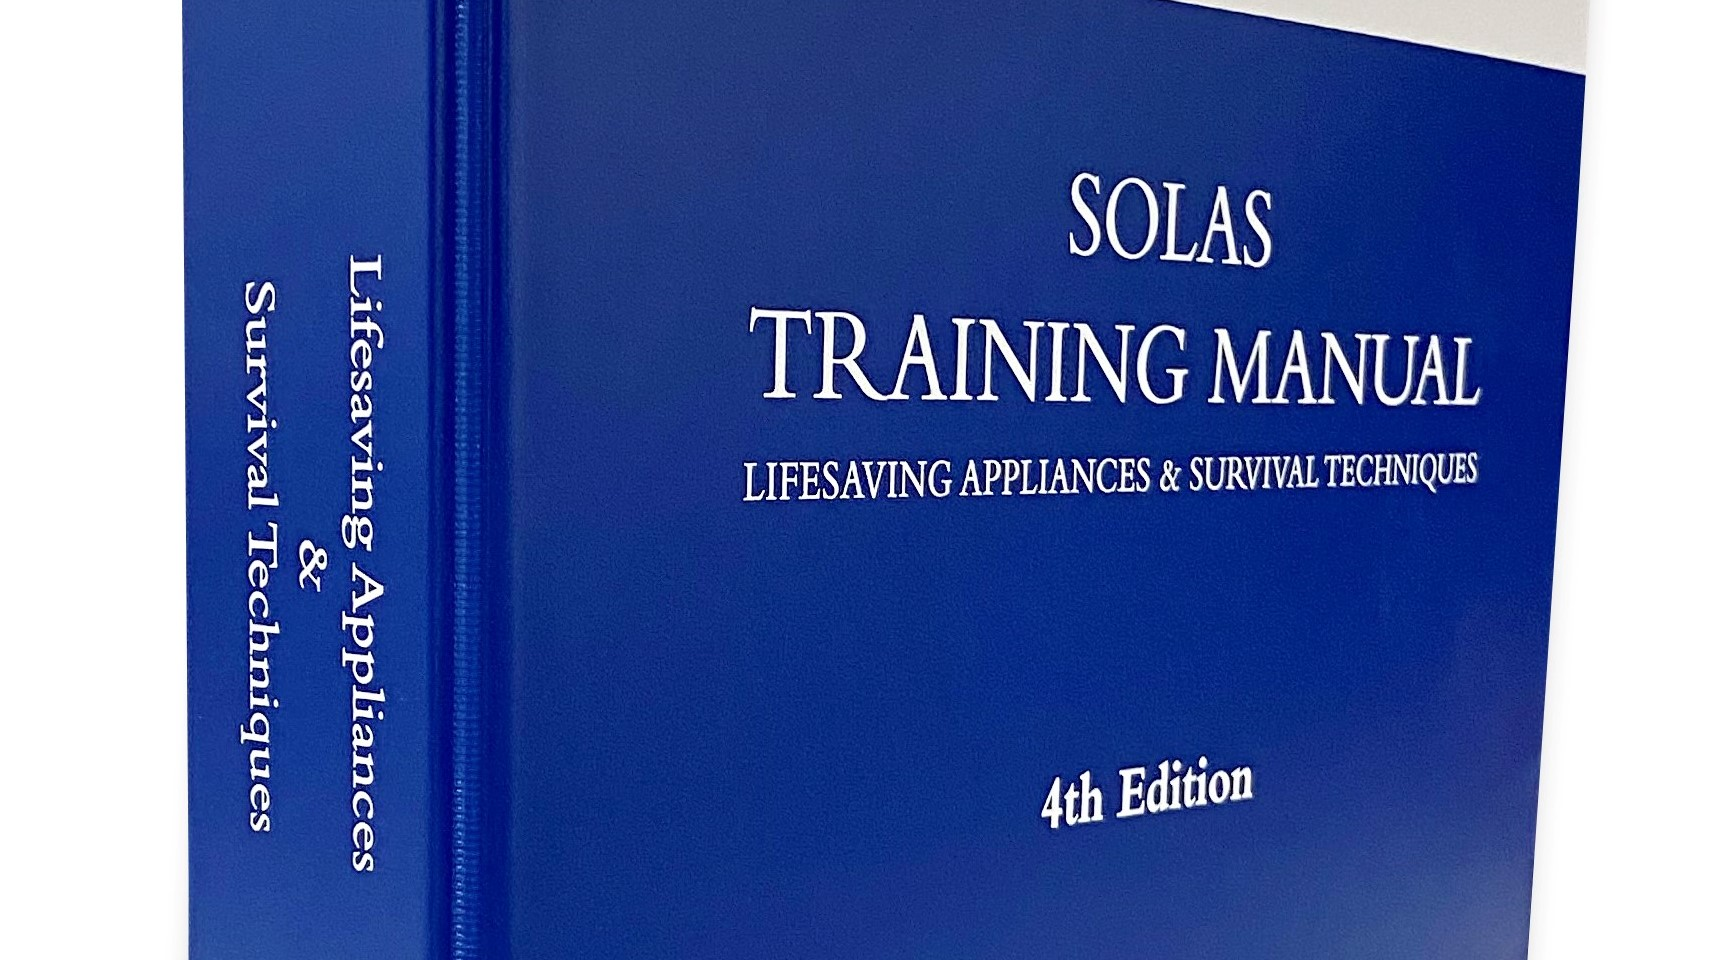 New for 2021 ! The SOLAS LSA Training Manual - 4th Edition !!